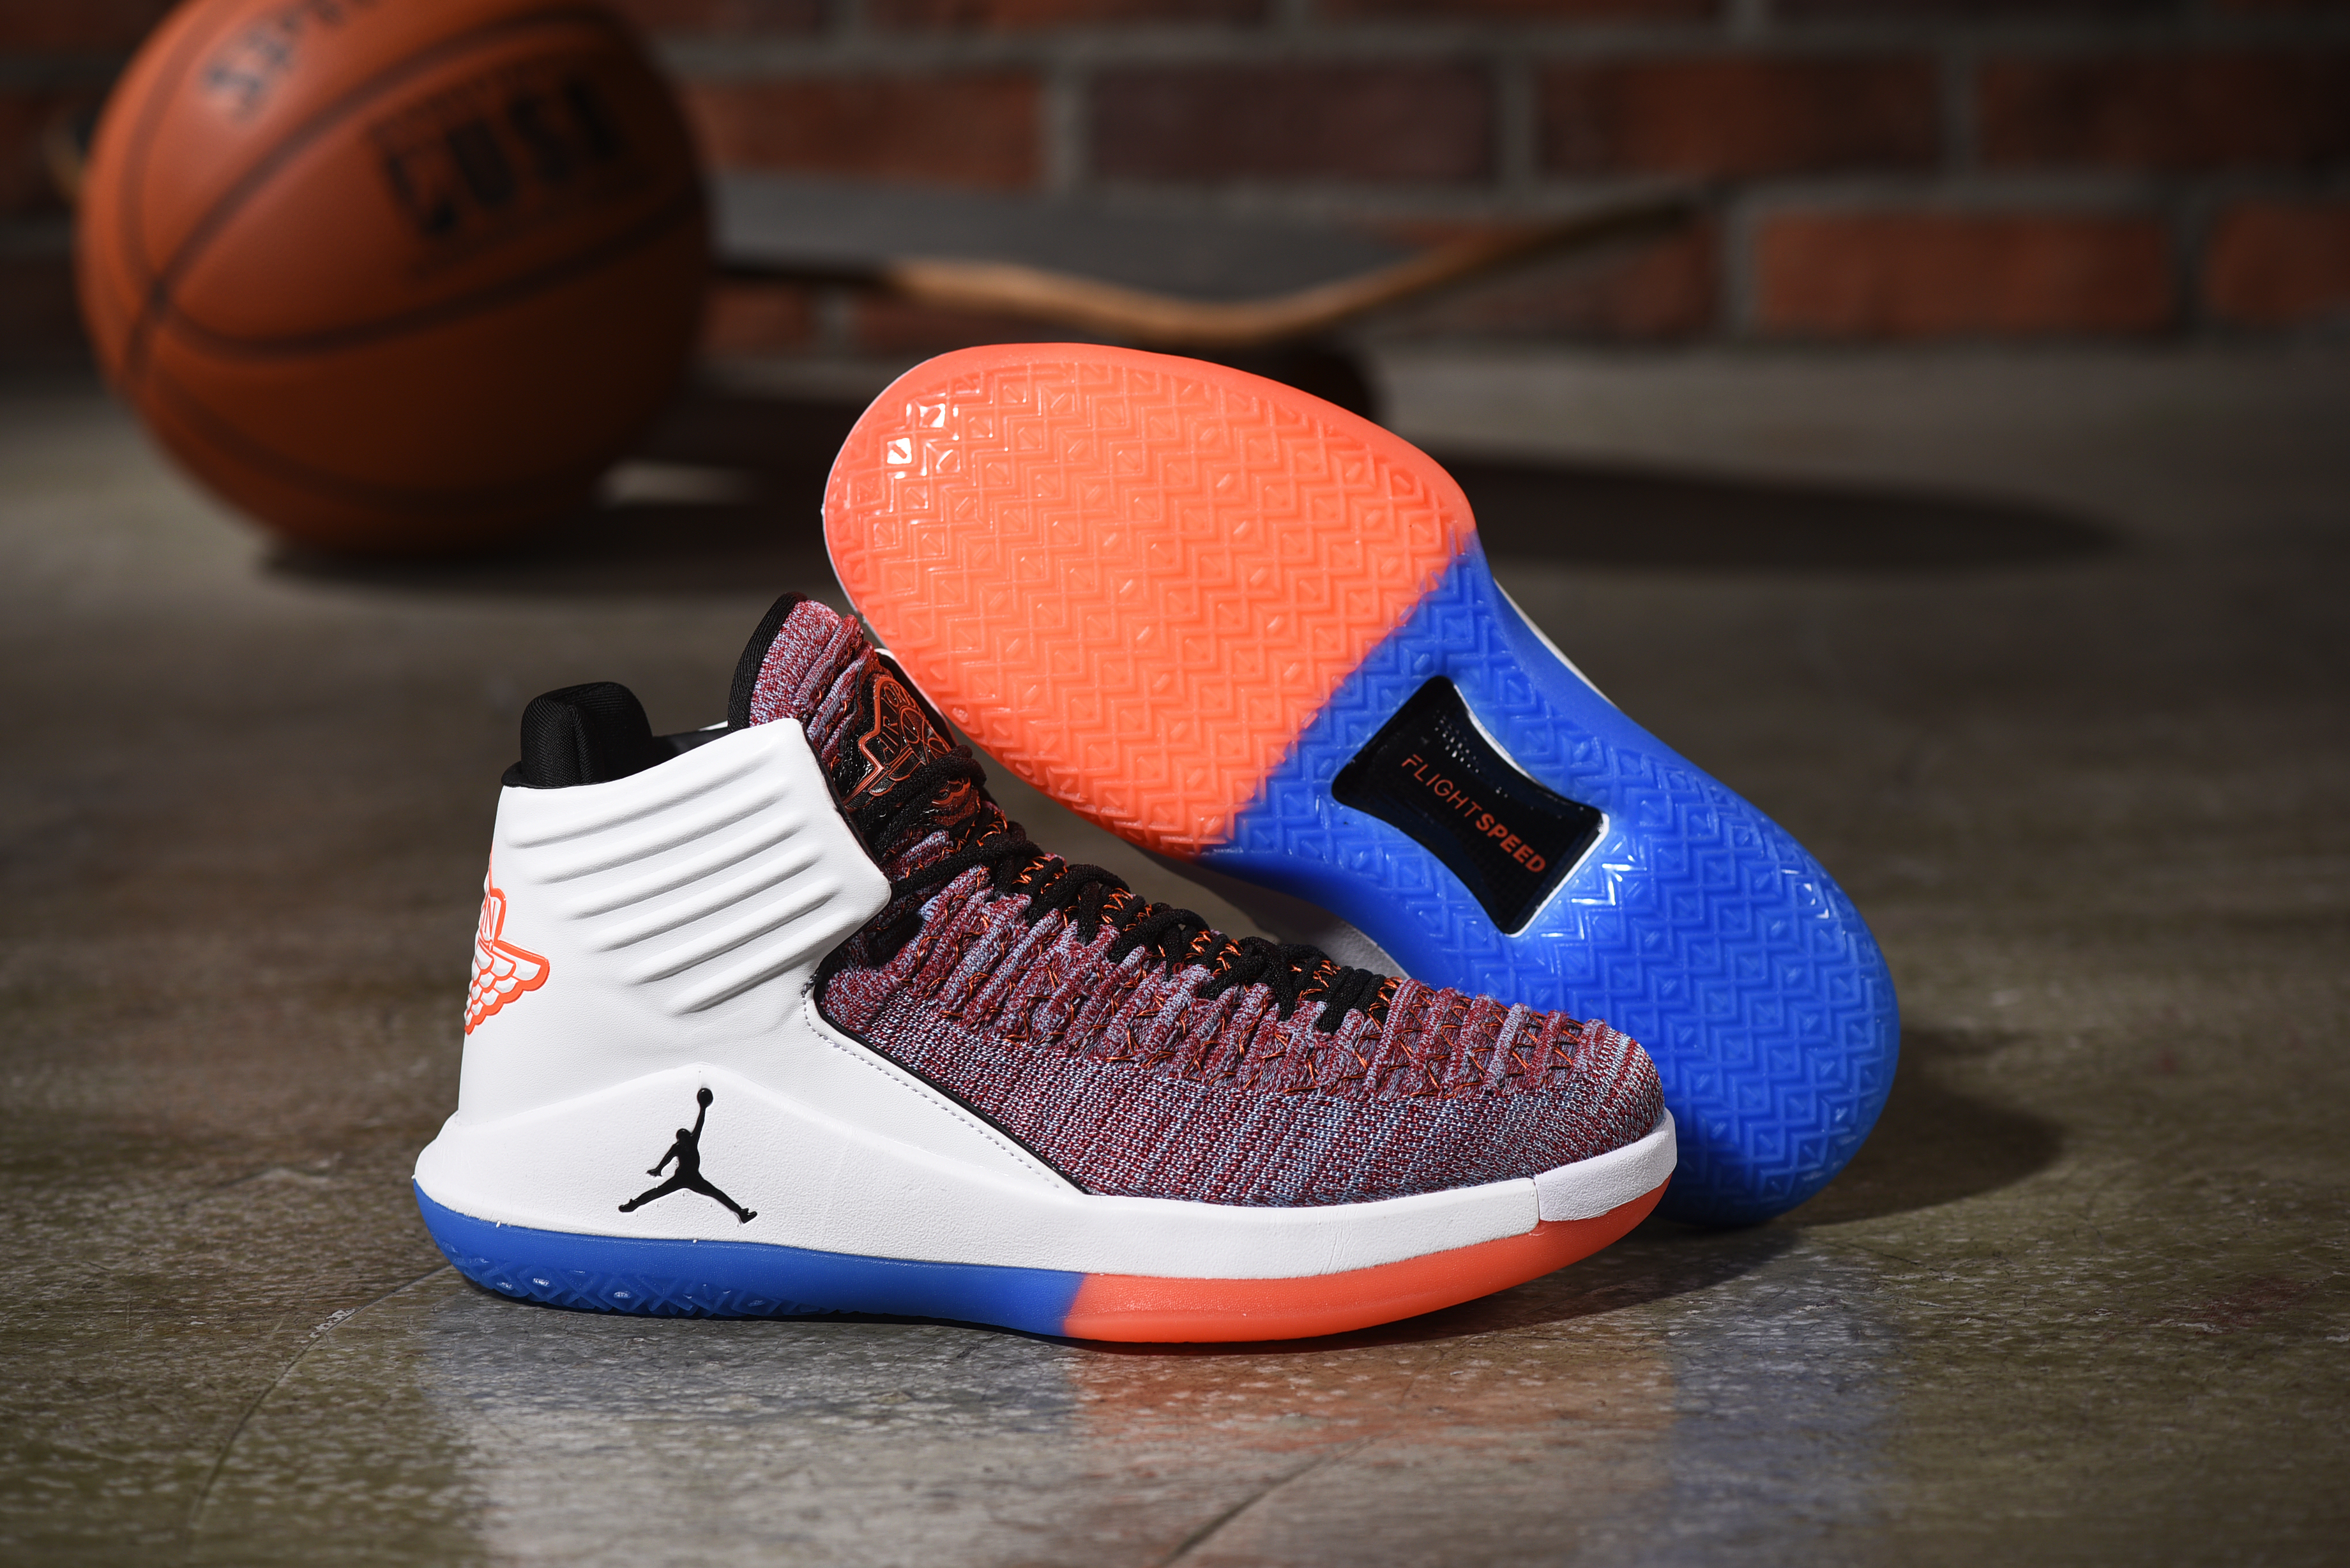 New Air Jordan 32 Wine Red Orange White Blue Shoes